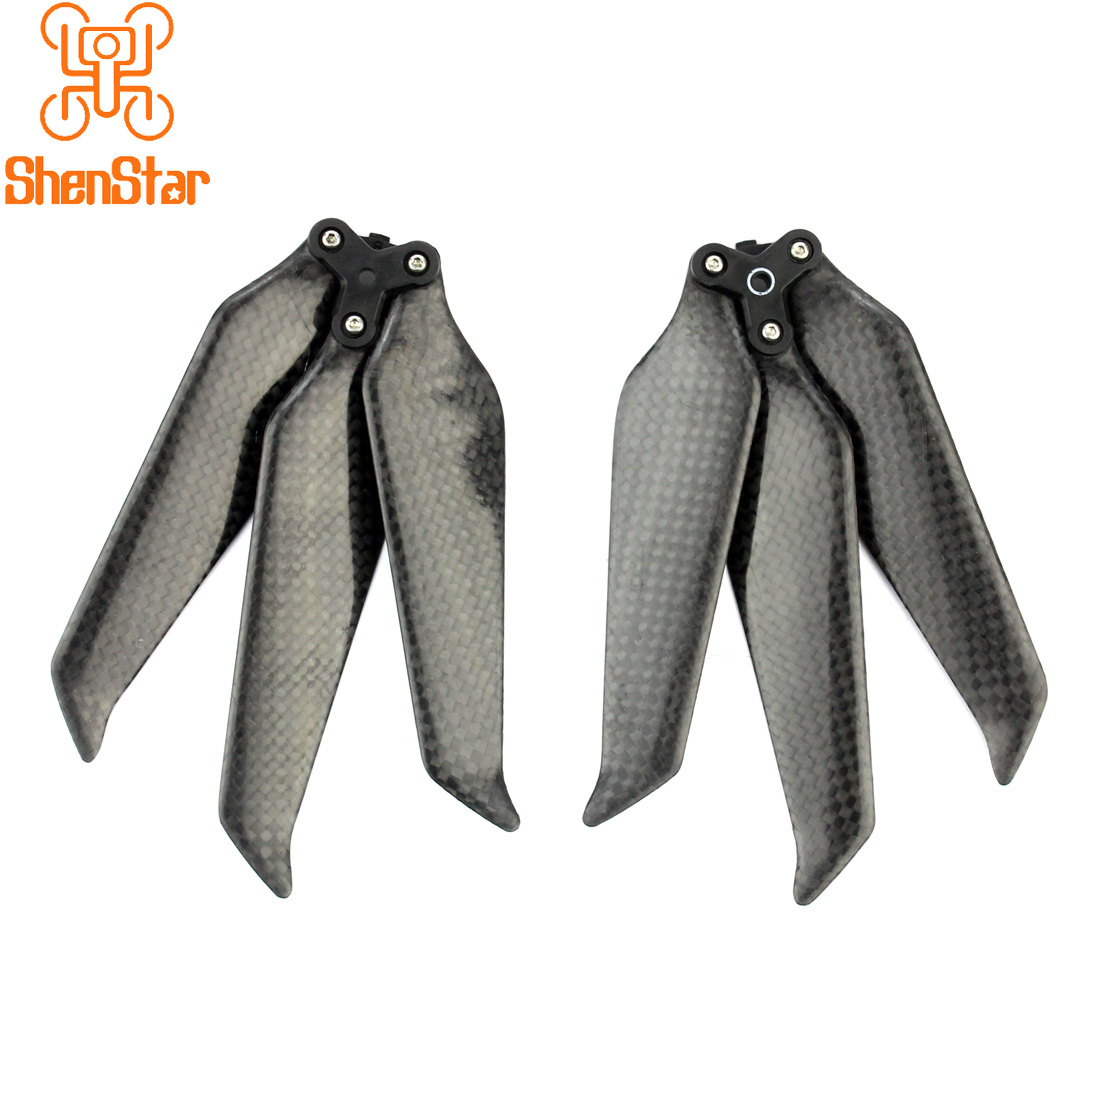 New Design 3Blade 8743 Full Carbon Fiber Propellers 8743F Foldable Low Noise CW CCW Props Paddle For DJI Mavic 2 Pro Zoom Drone